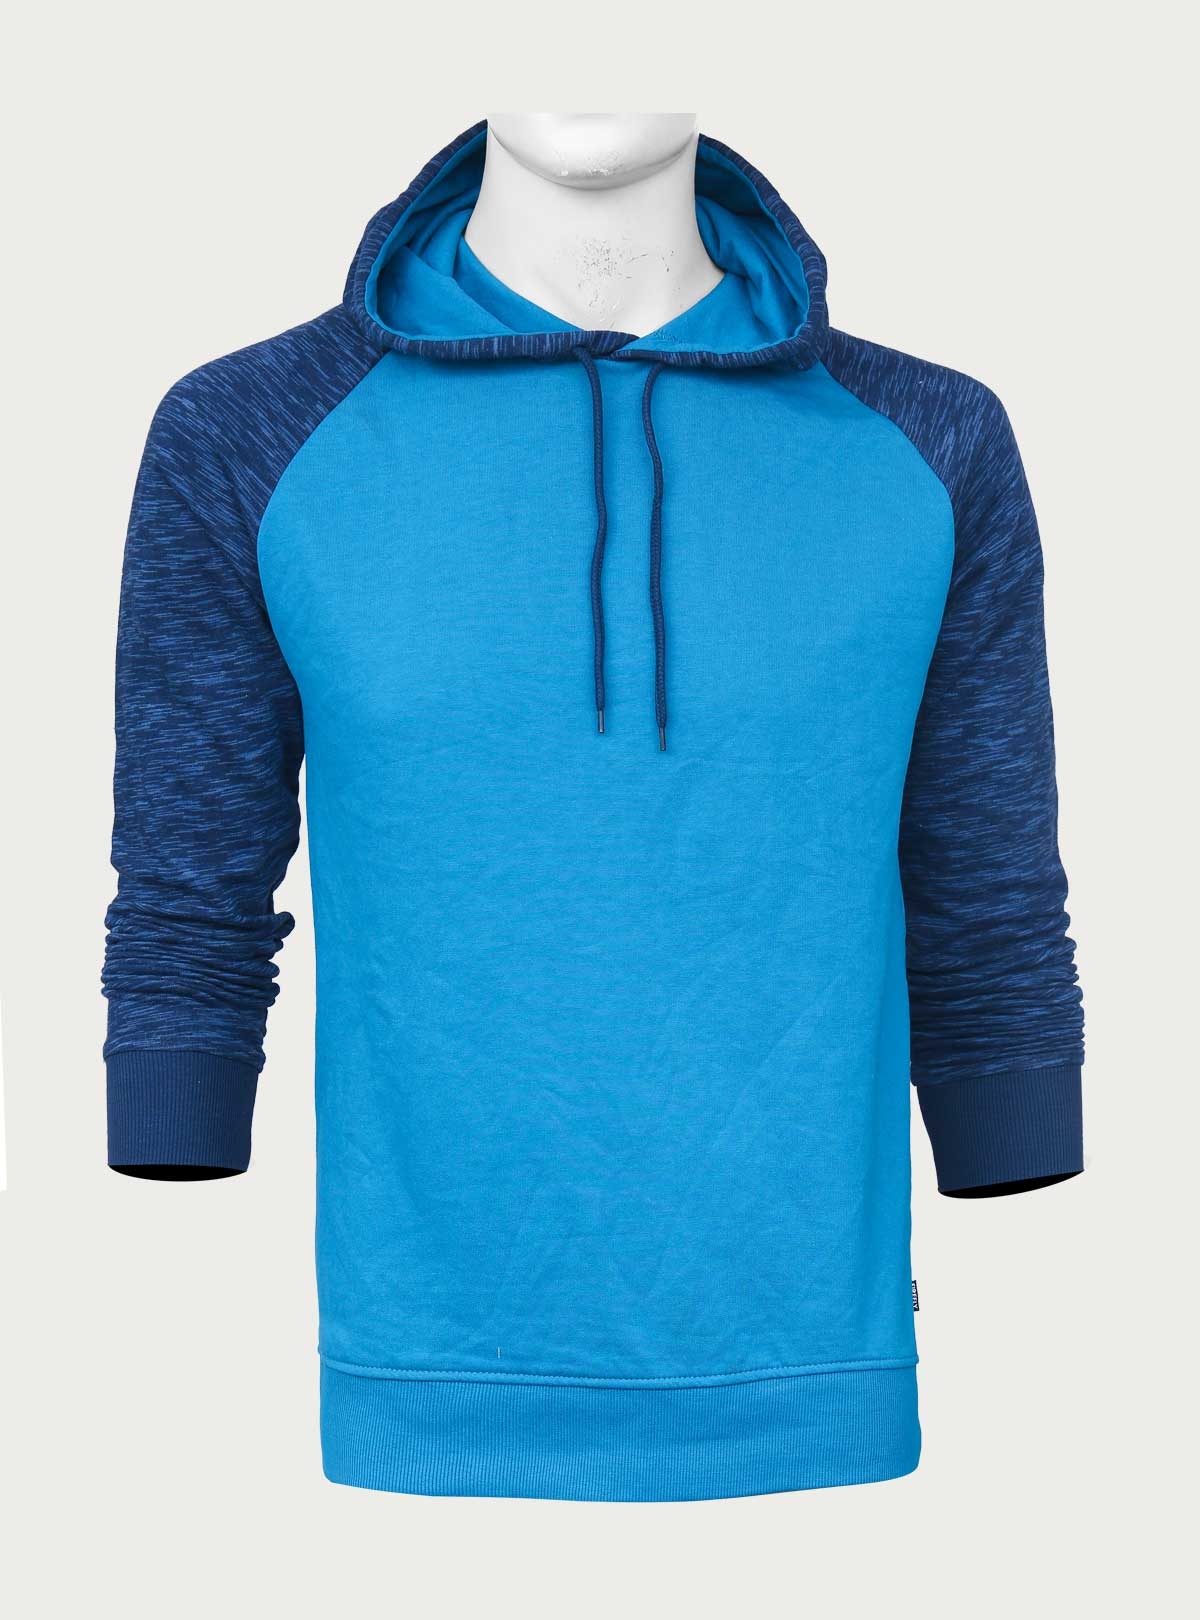 Winter Hoodie Sweater By FIREFLY | Esho.com | Best online shopping ...